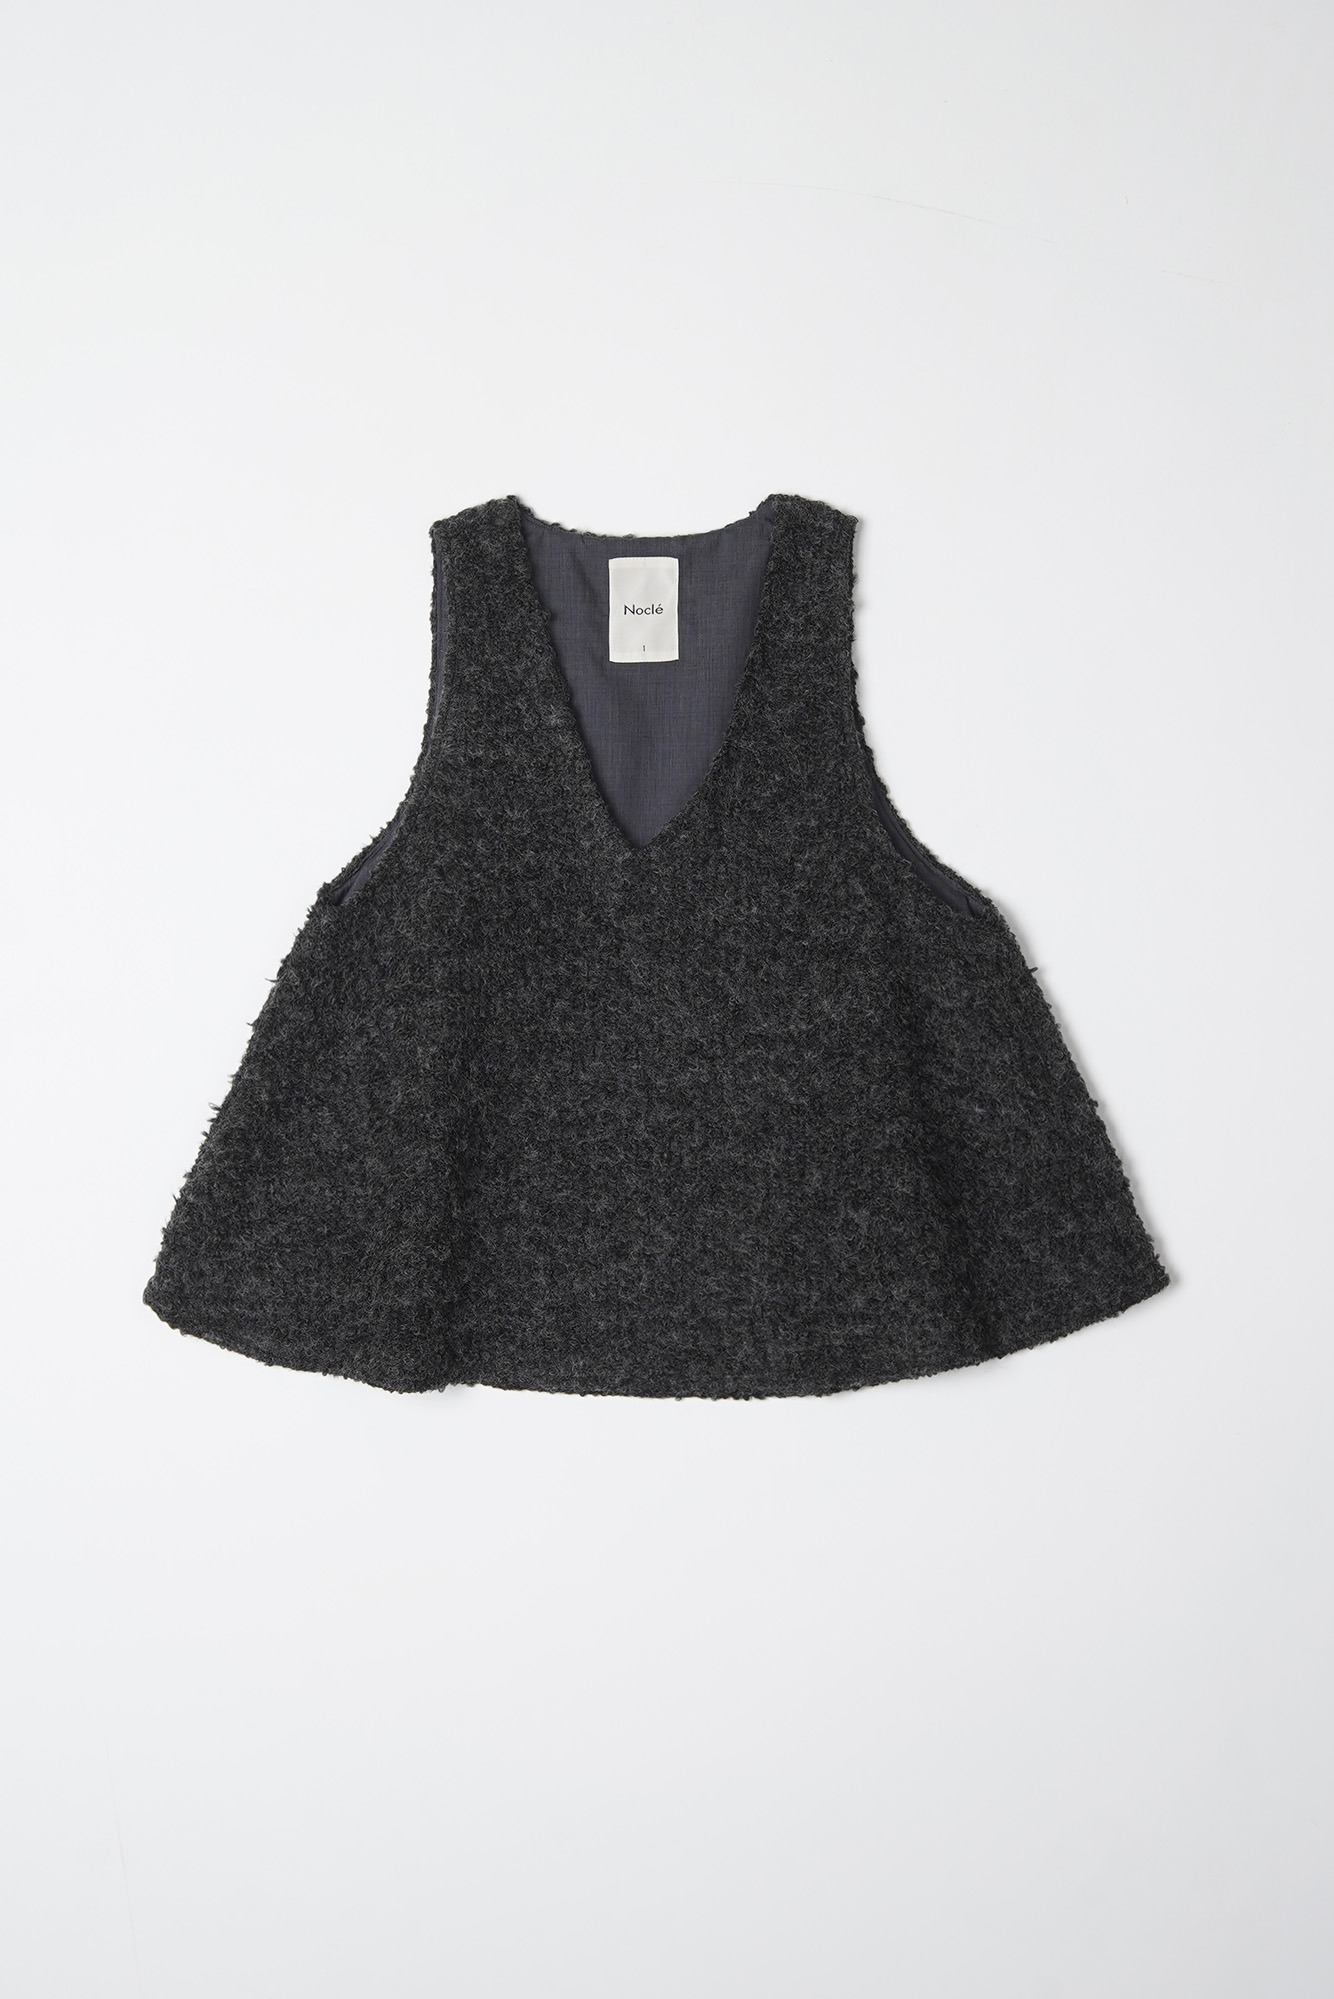 "Noclé Loop Yarn Wool V Neck Vest ""Charcoal"""